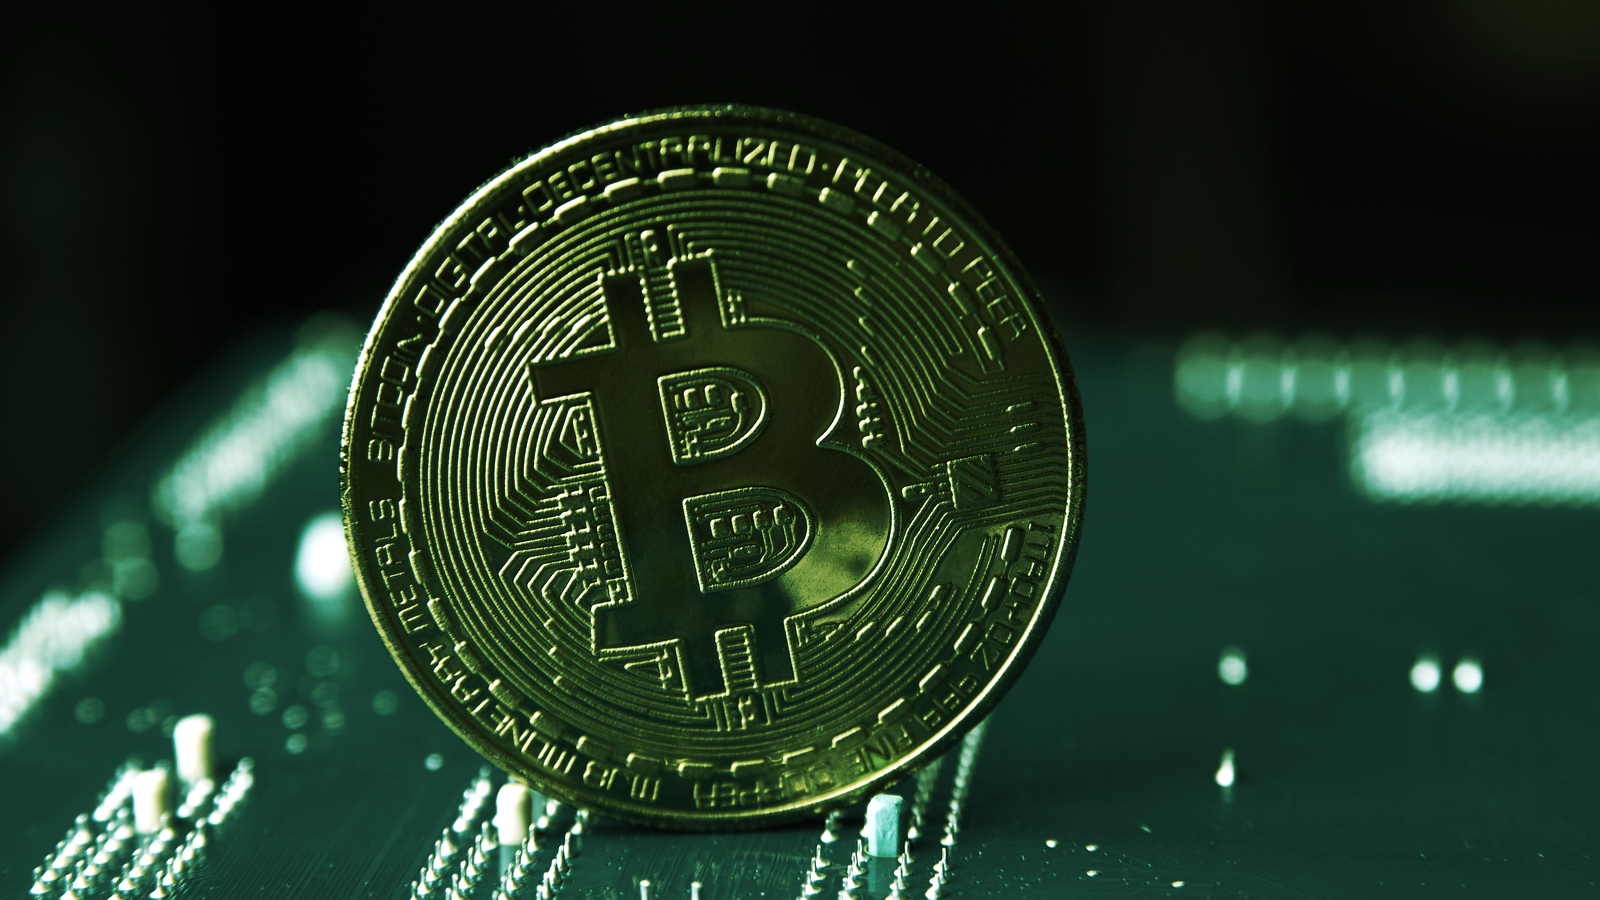 George Soros Fund Manager Says Bitcoin Has Gone 'Mainstream', Fund Owns 'Some Coins'